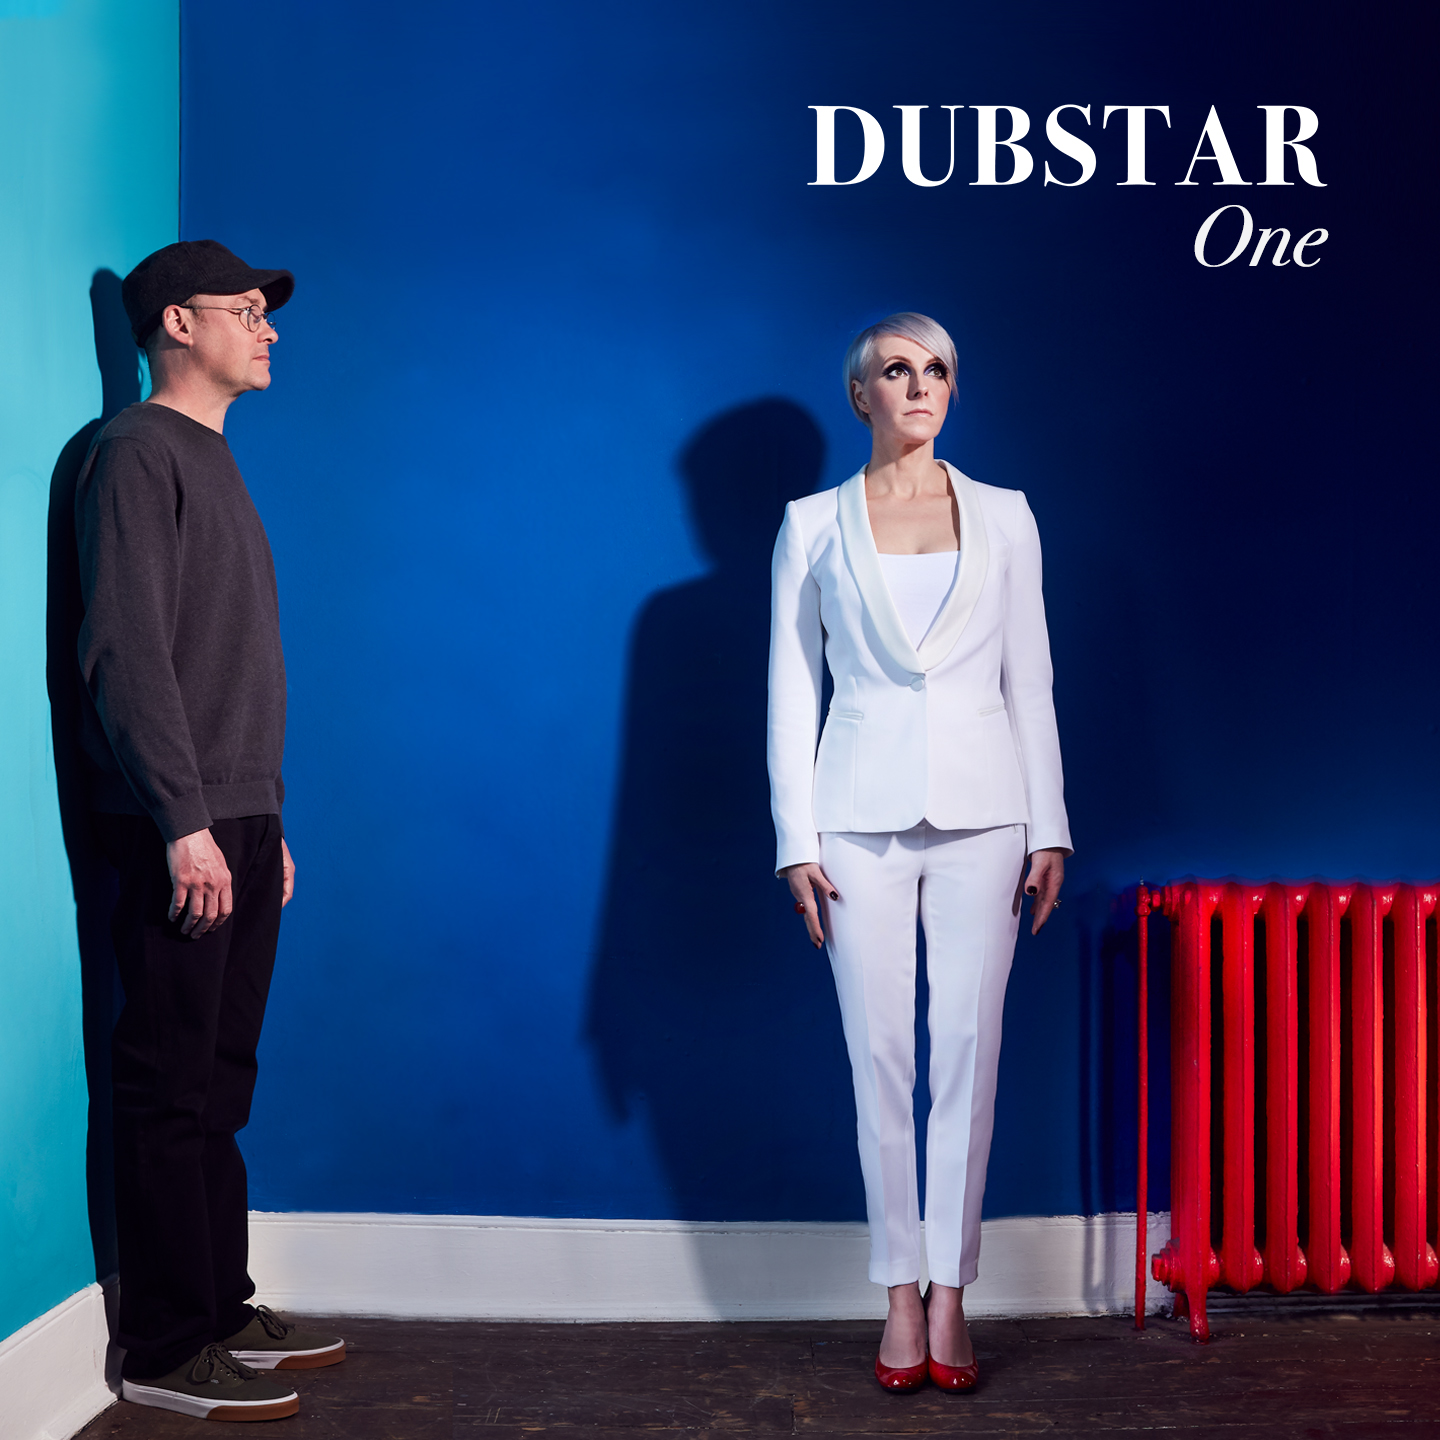 Review: Dubstar - One